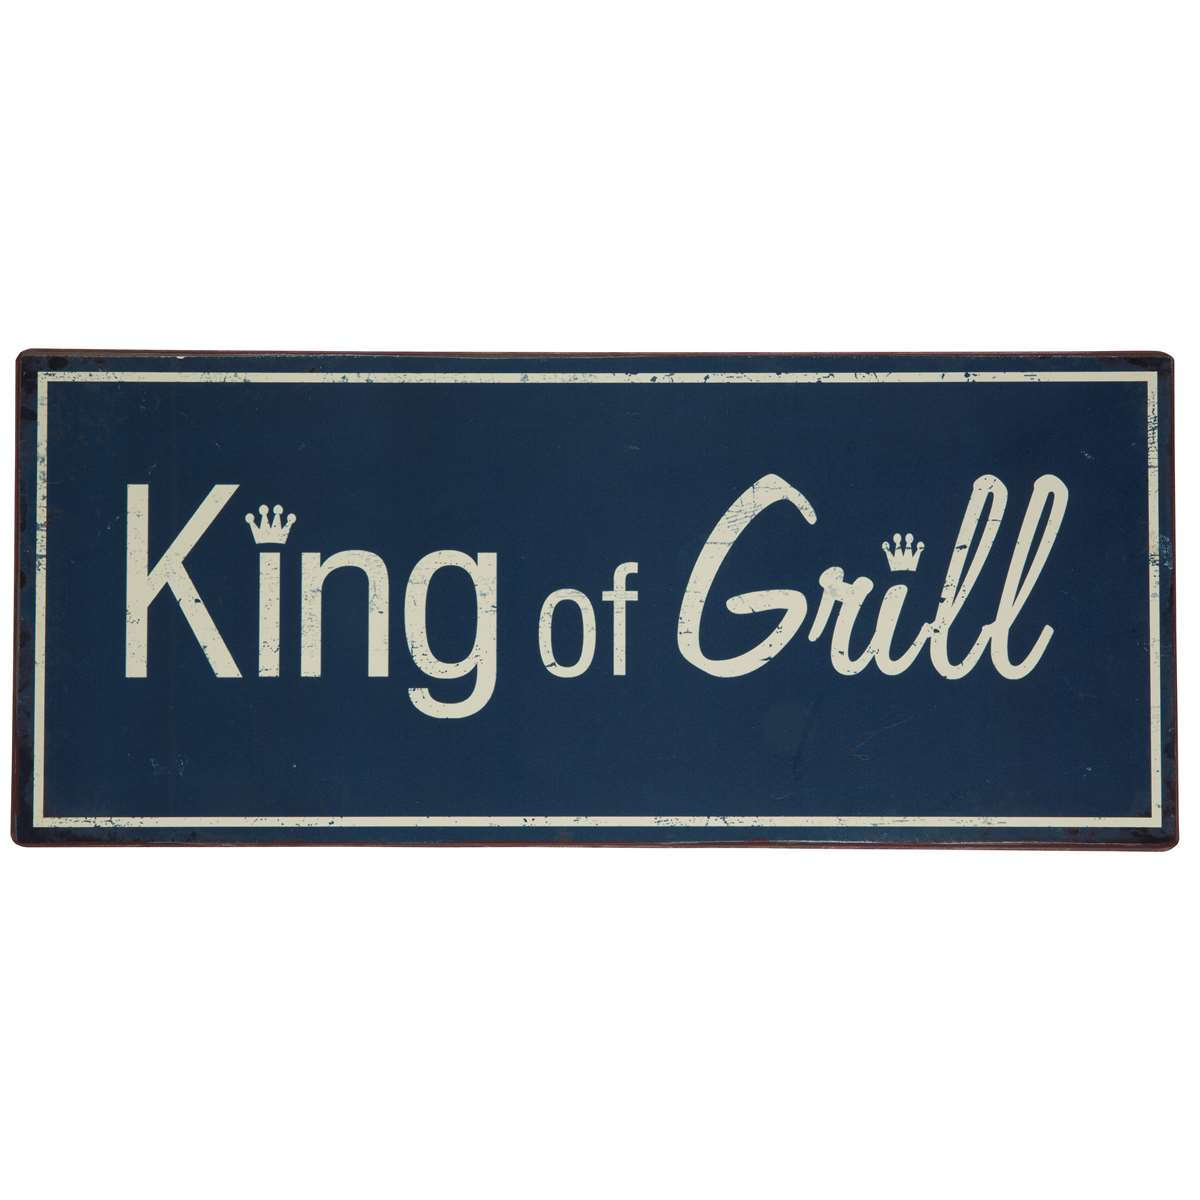 Metallschild King of grill